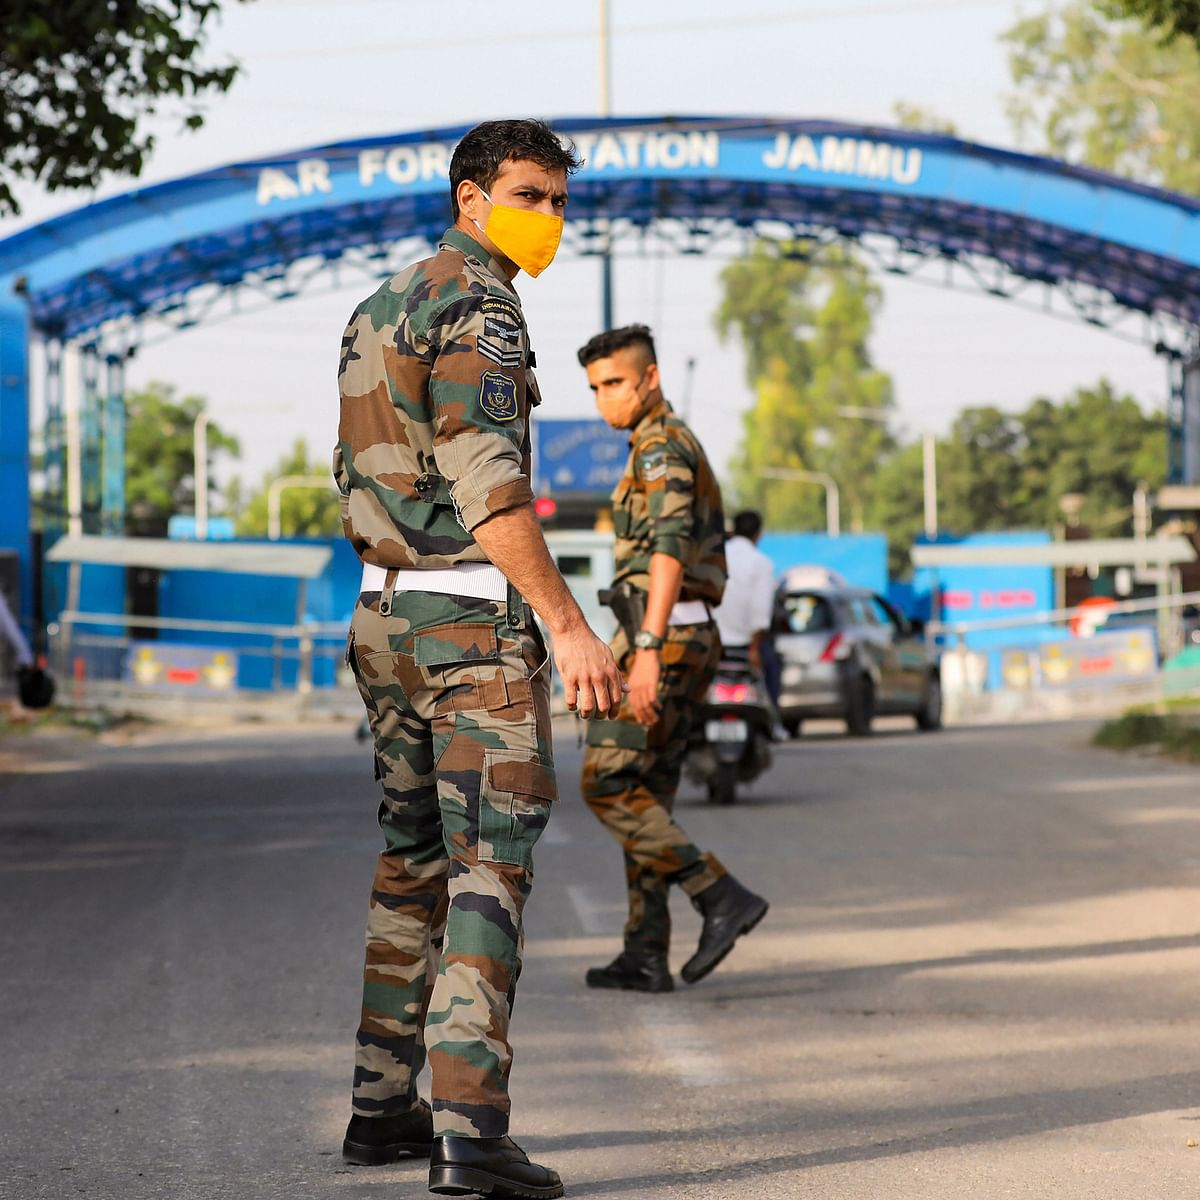 J&K Police registers FIR under UAPA after two blasts rock Indian Air Force station in Jammu